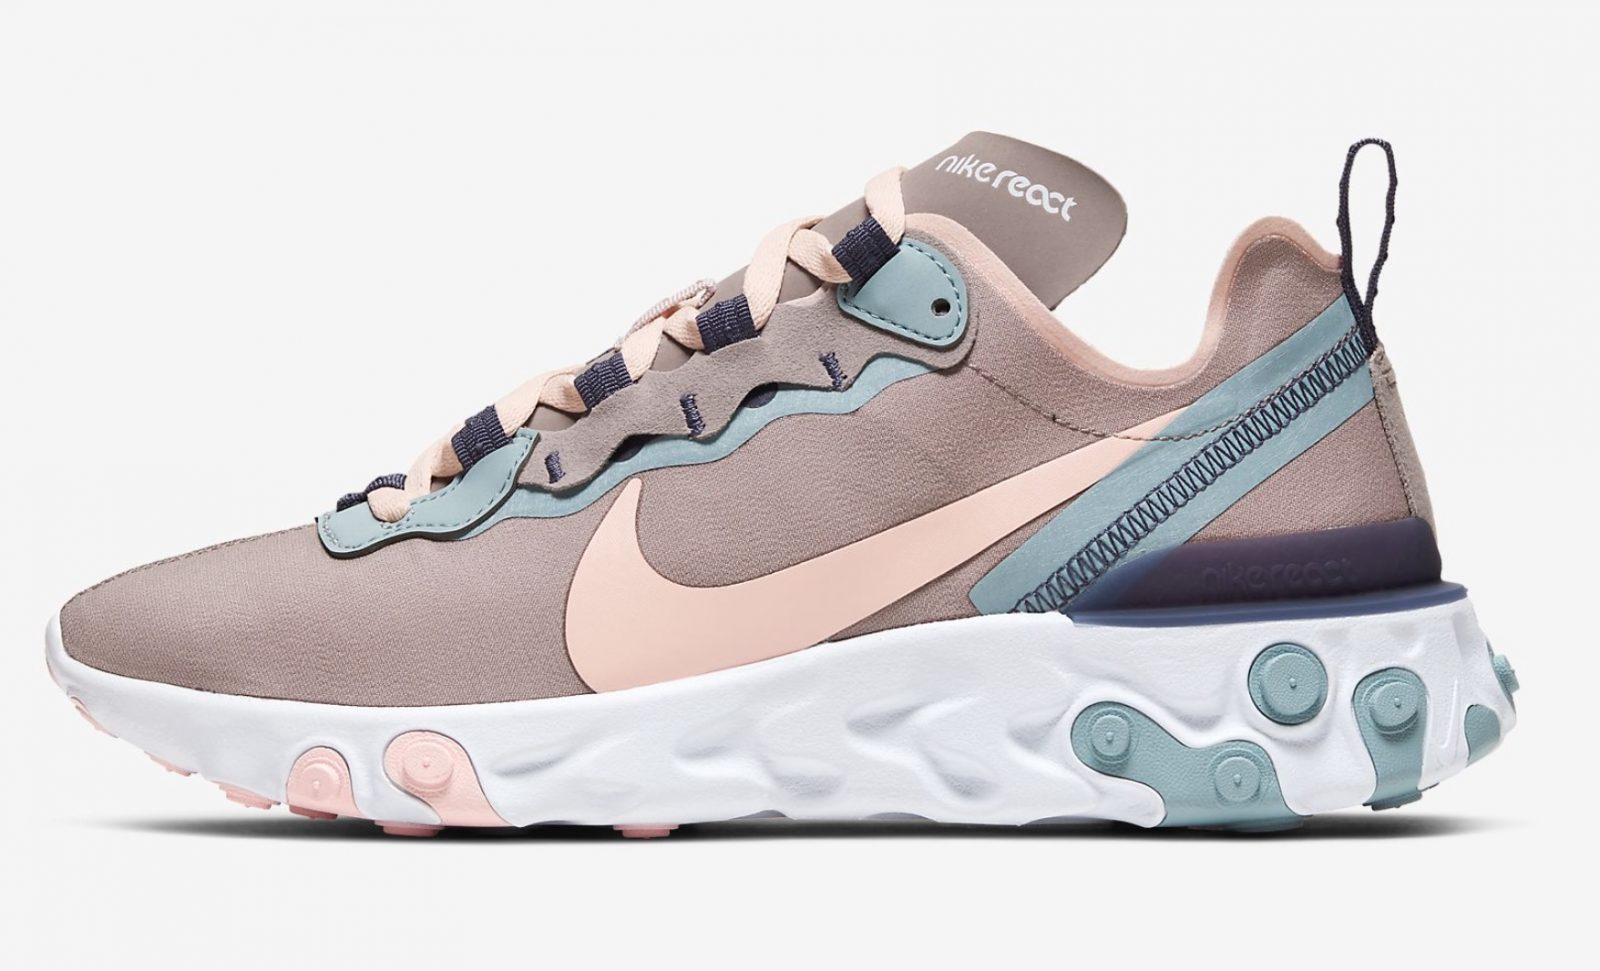 Nike React Element 55Pumice/Sanded Purple/Ocean Cube/Echo Pink |CK0834-200 outer